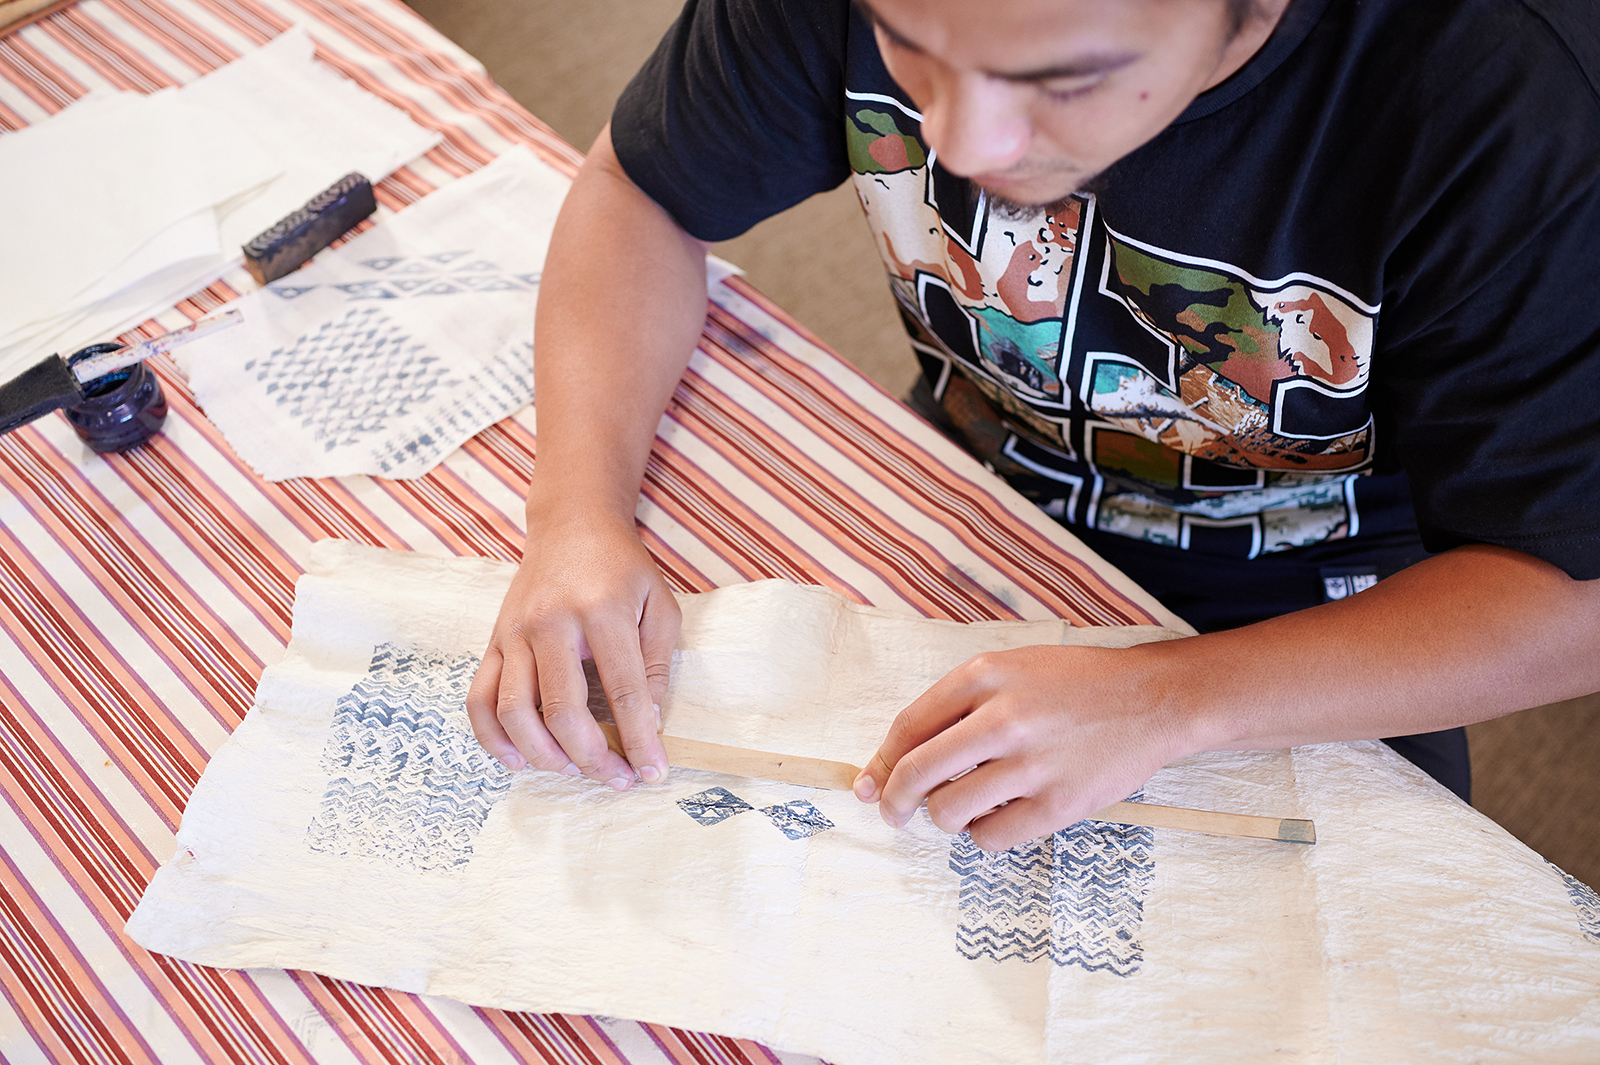 Person stamping geometric patterns on a cloth.